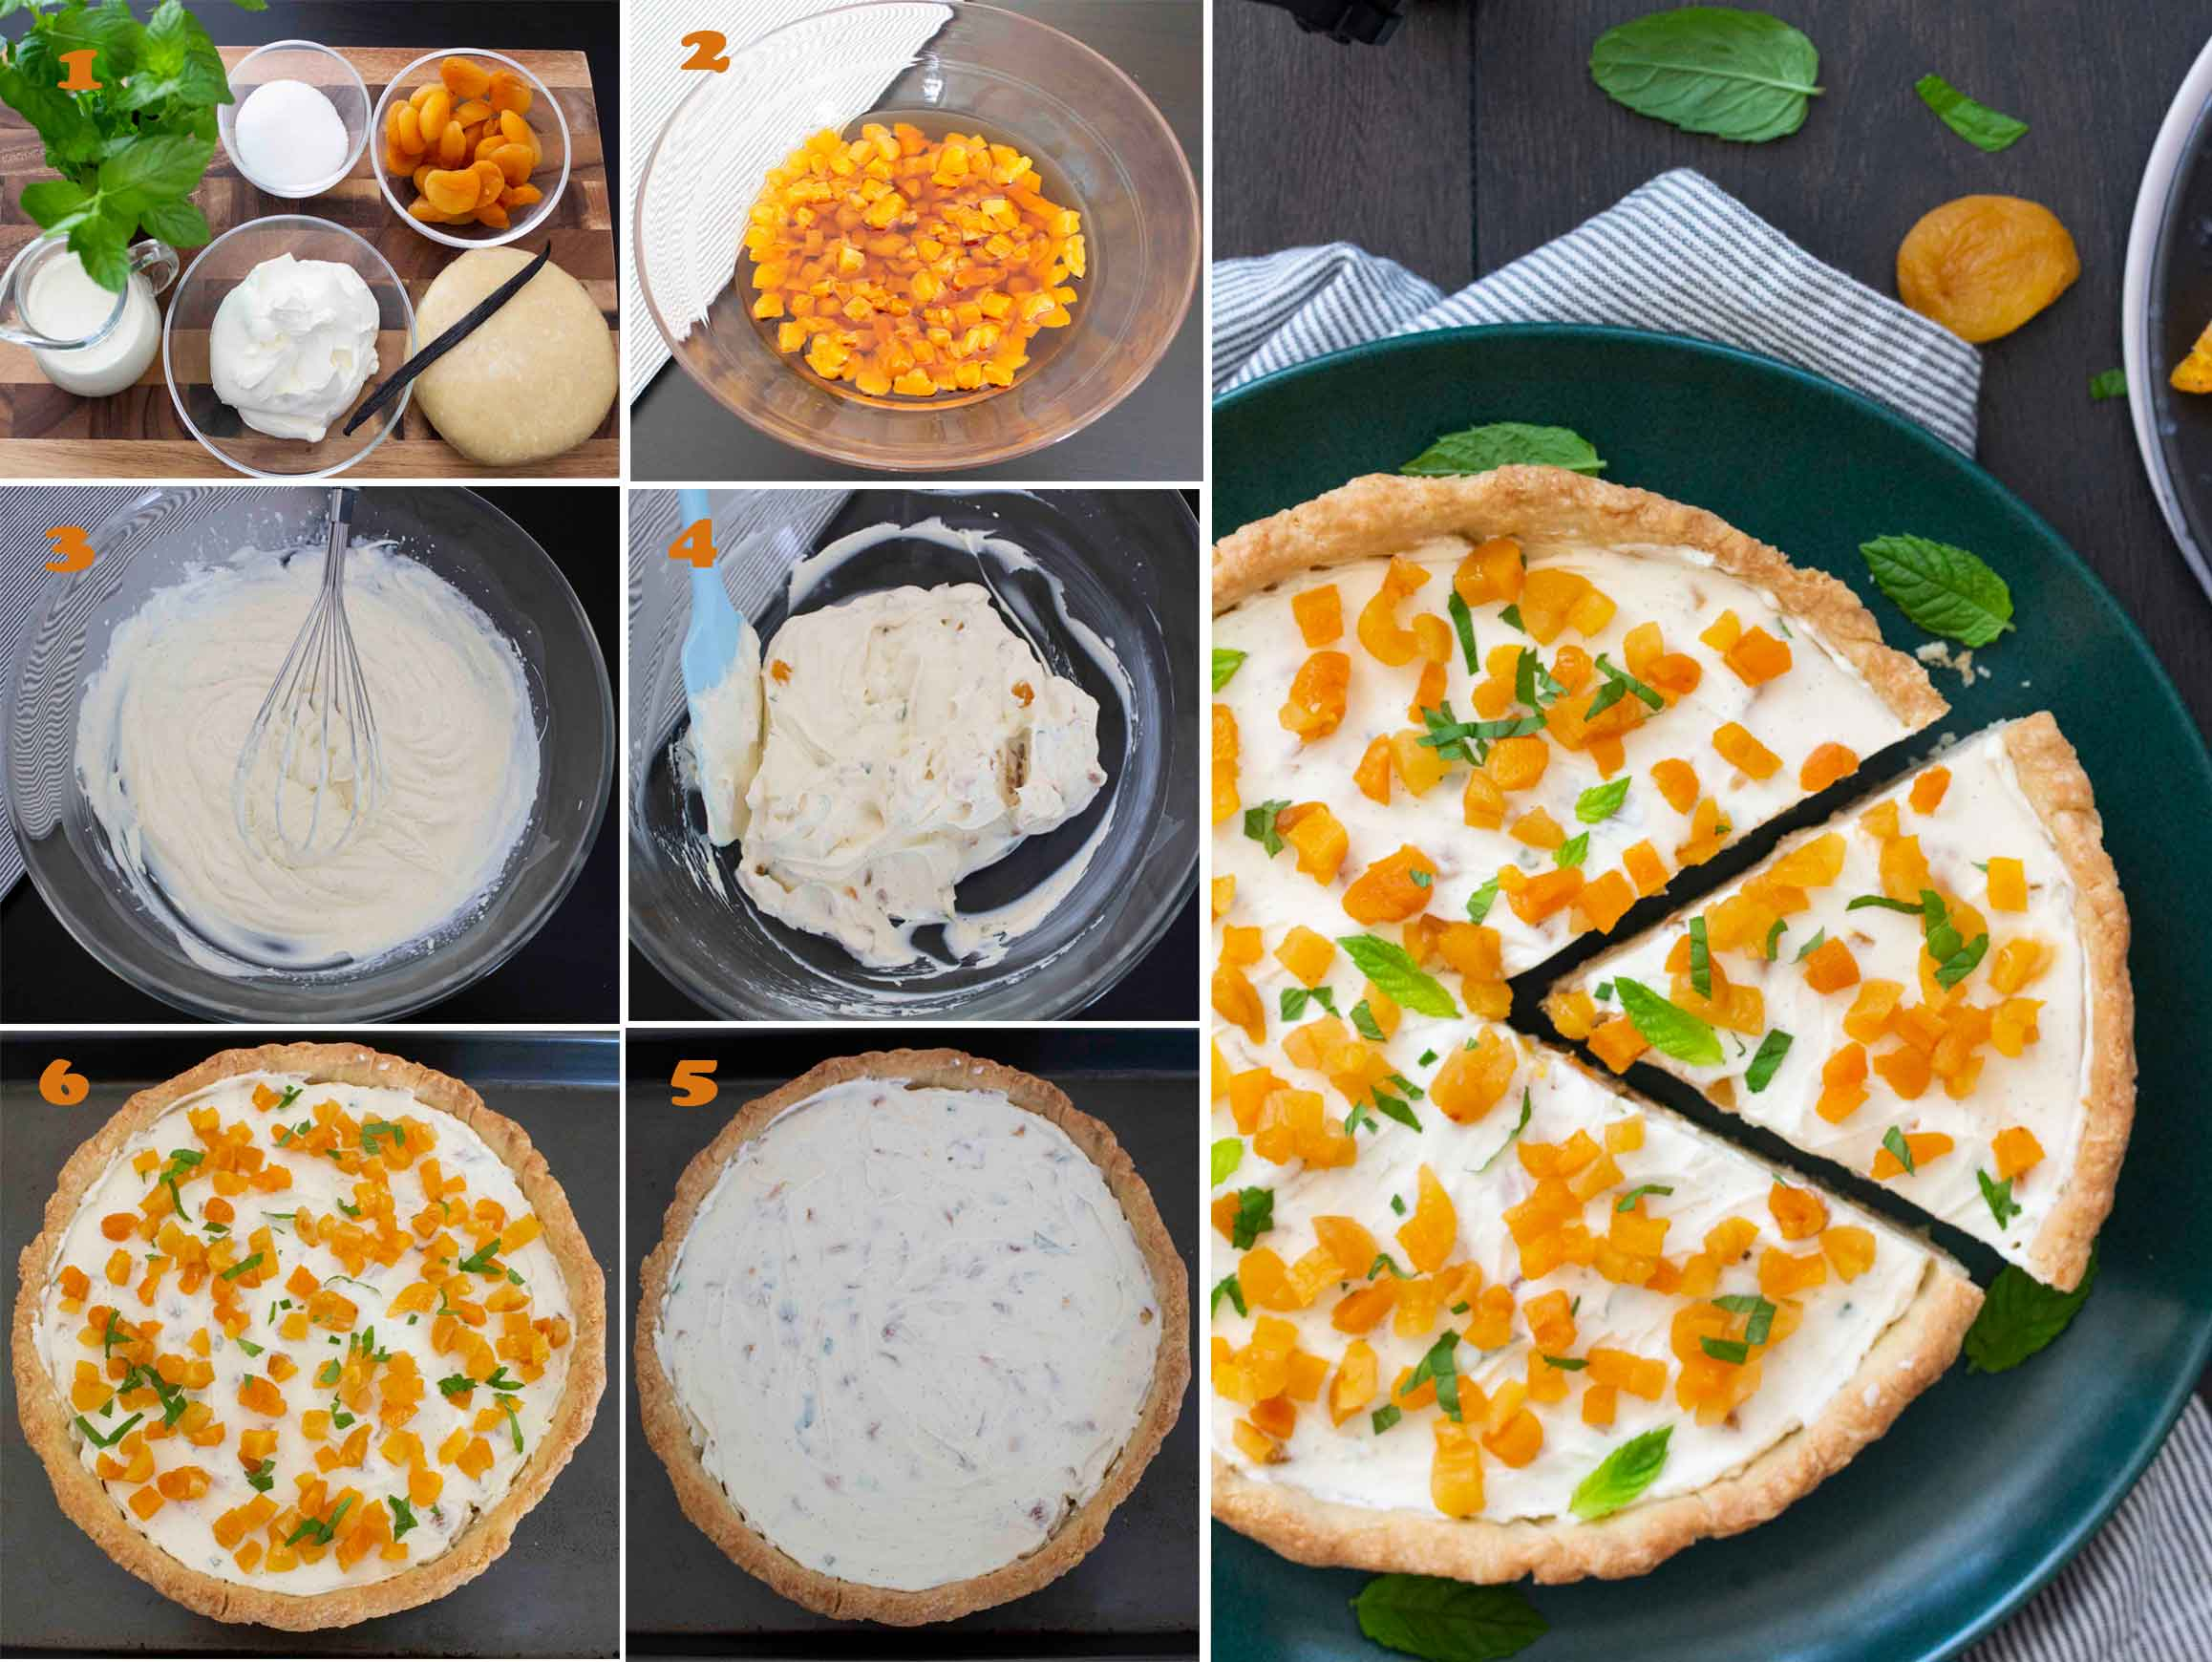 A collage of images showing the step by step process to make Mascarpone and Dried Apricot Tart.